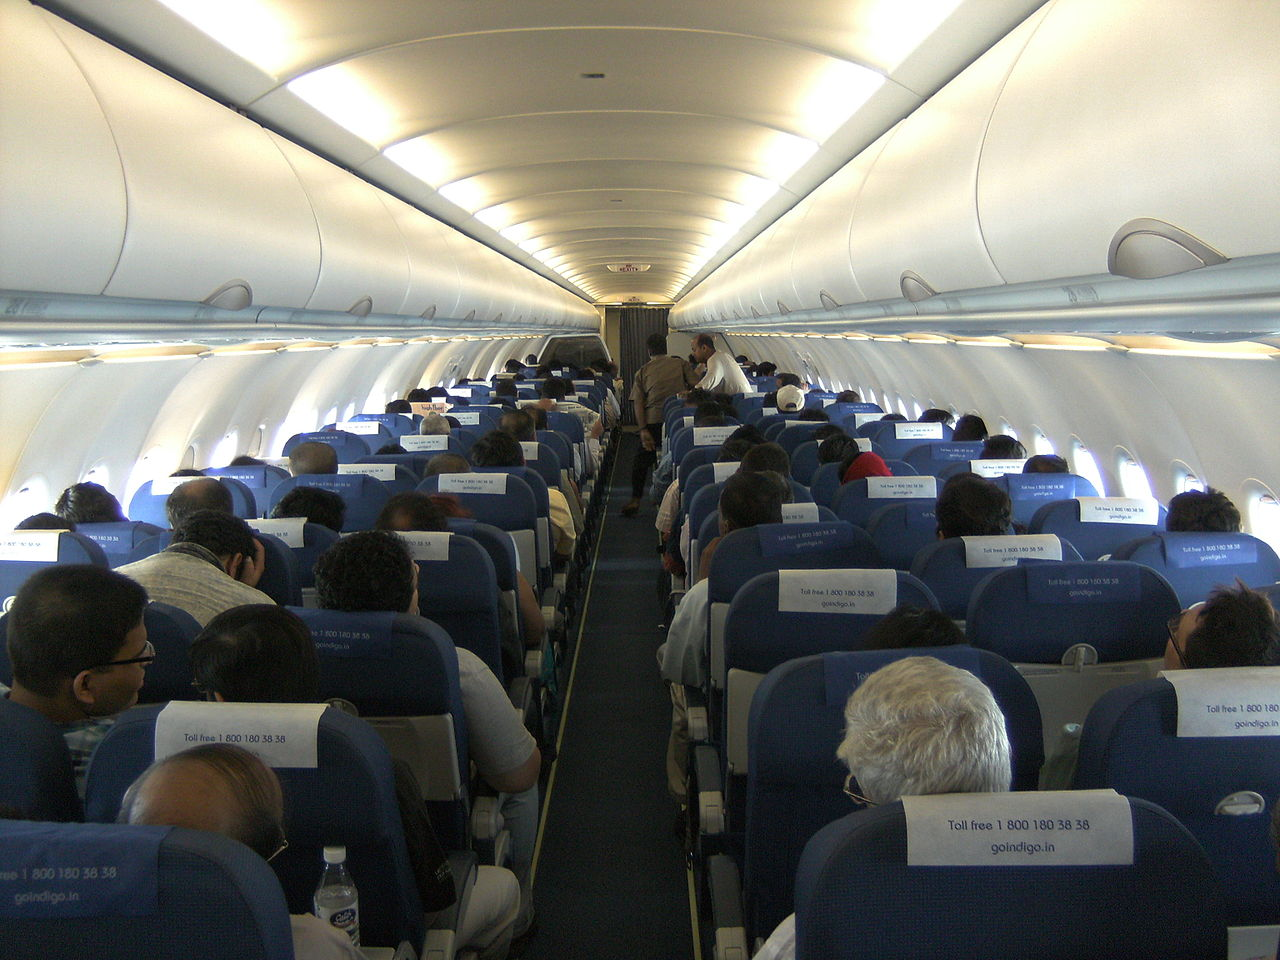 Southwest Airline Discount Code For Dollar Rent A Car